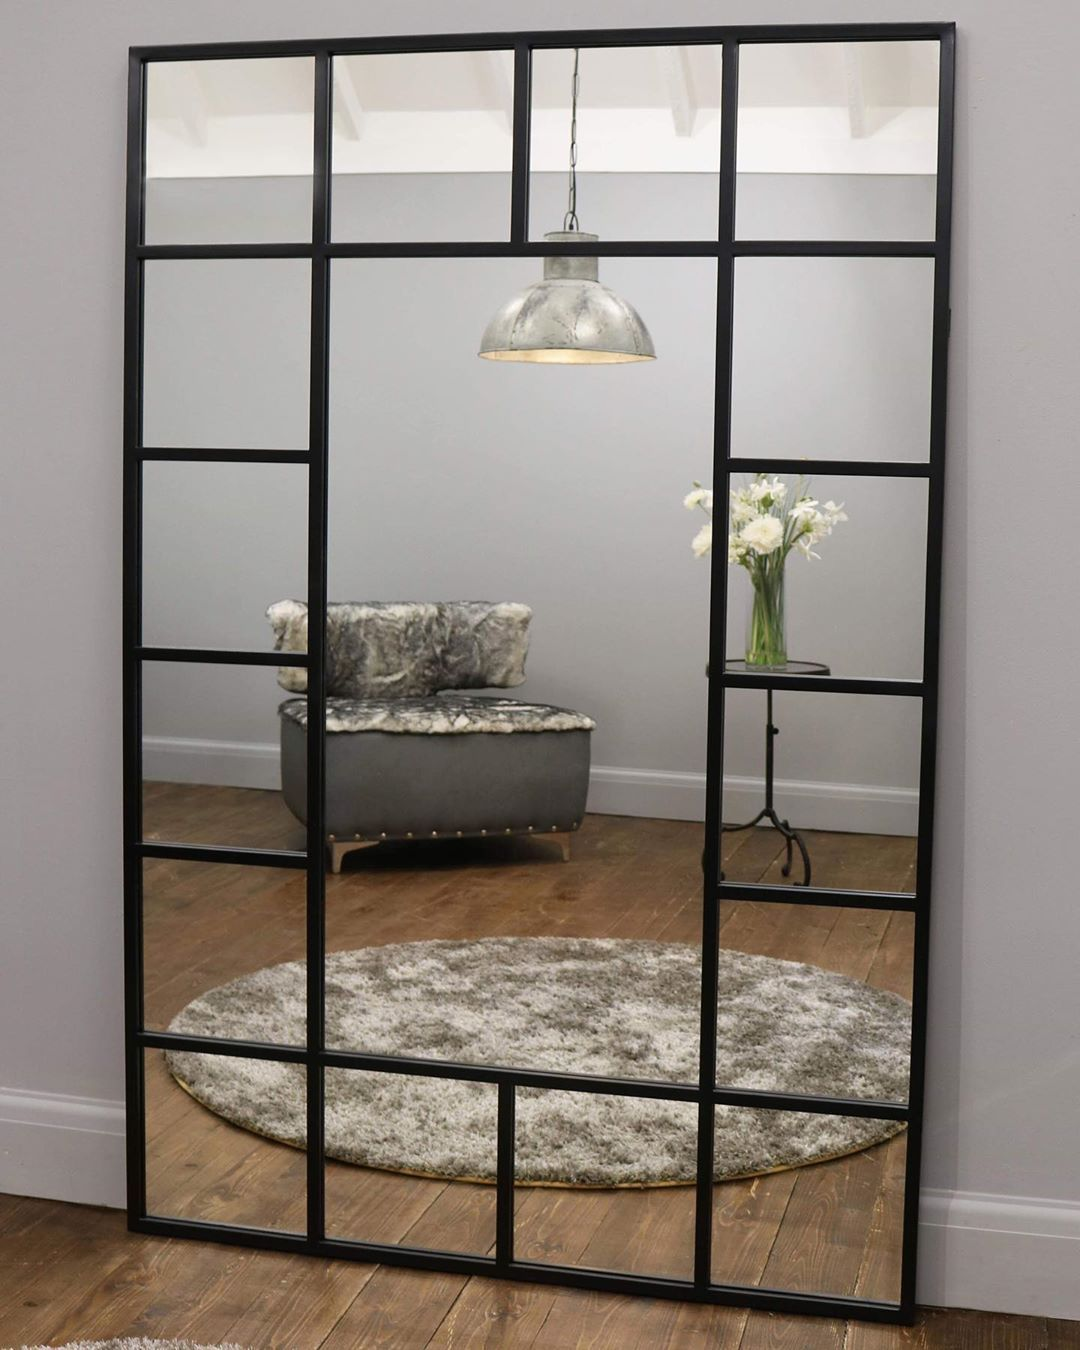 William Wood Mirrors On Instagram 20 Off Extra Large Until Midnight 17th June Get 20 Off Any Industrial Mirrors Mirror Wall Bedroom Living Room Mirrors